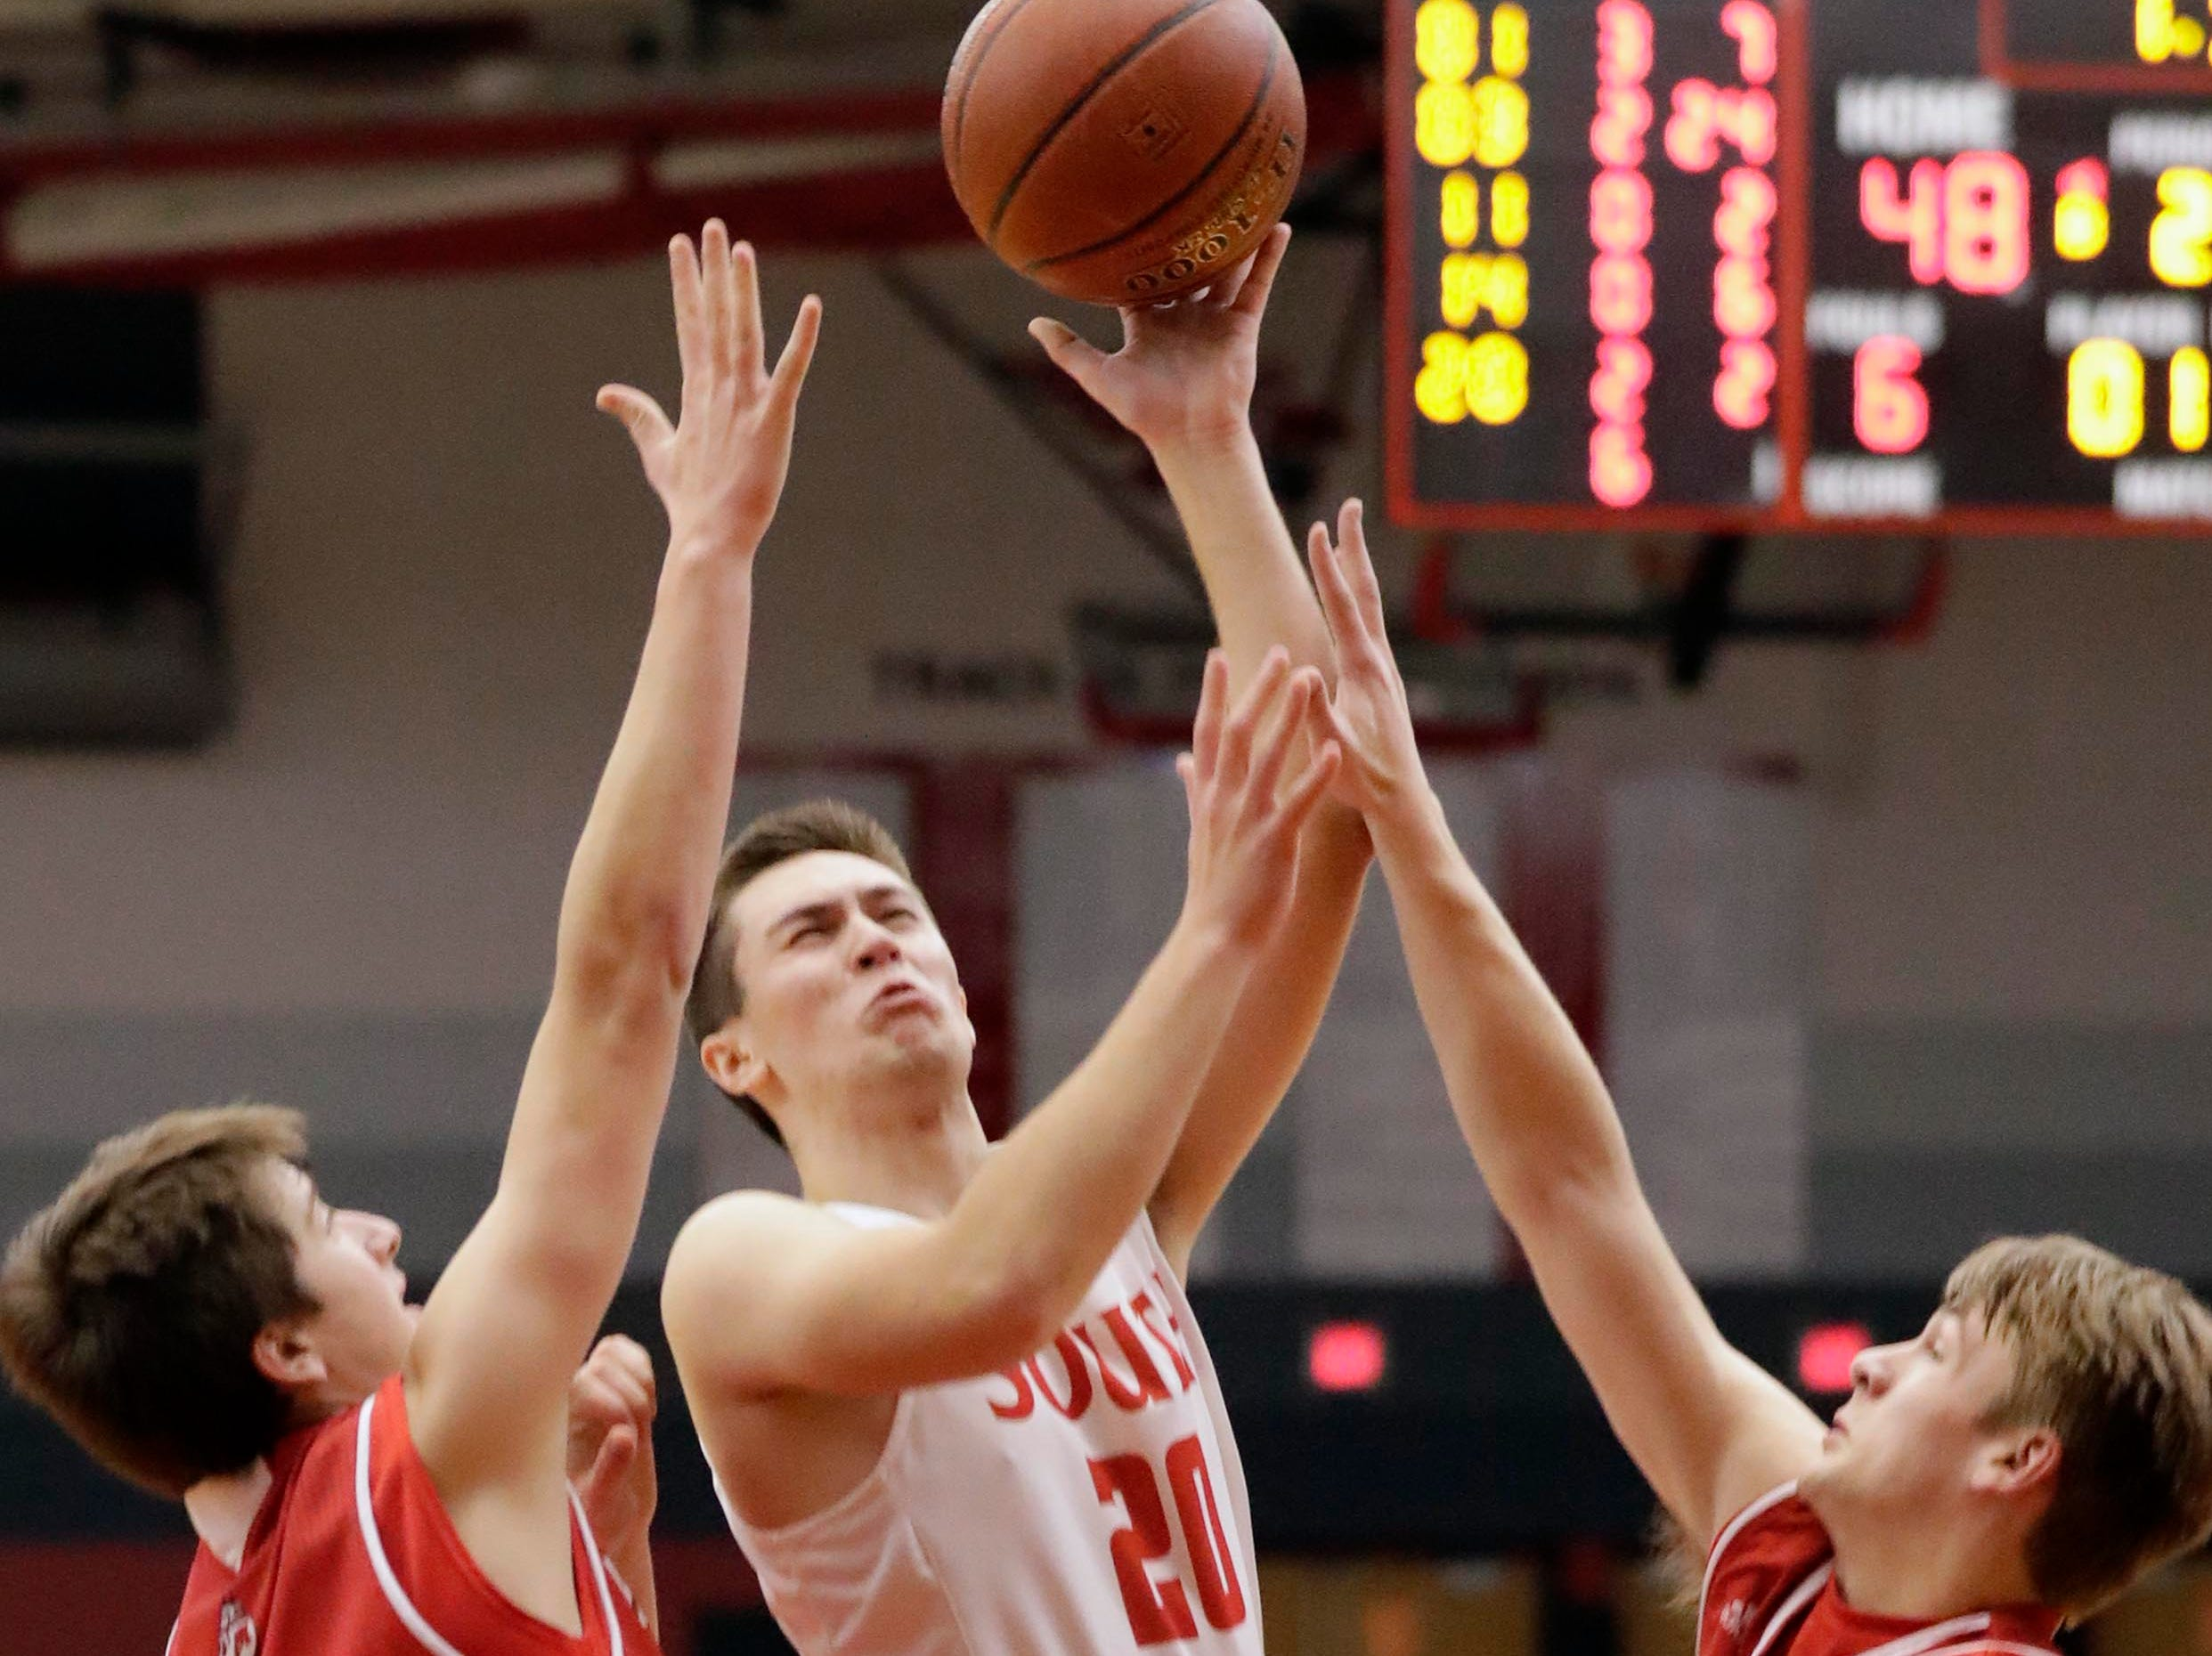 Sheboygan South's Nick Larson (20) grimaces as he shoots the ball while getting pressure from Manitowoc Lincoln players, Tuesday, February 26, 2019, in Sheboygan, Wis.